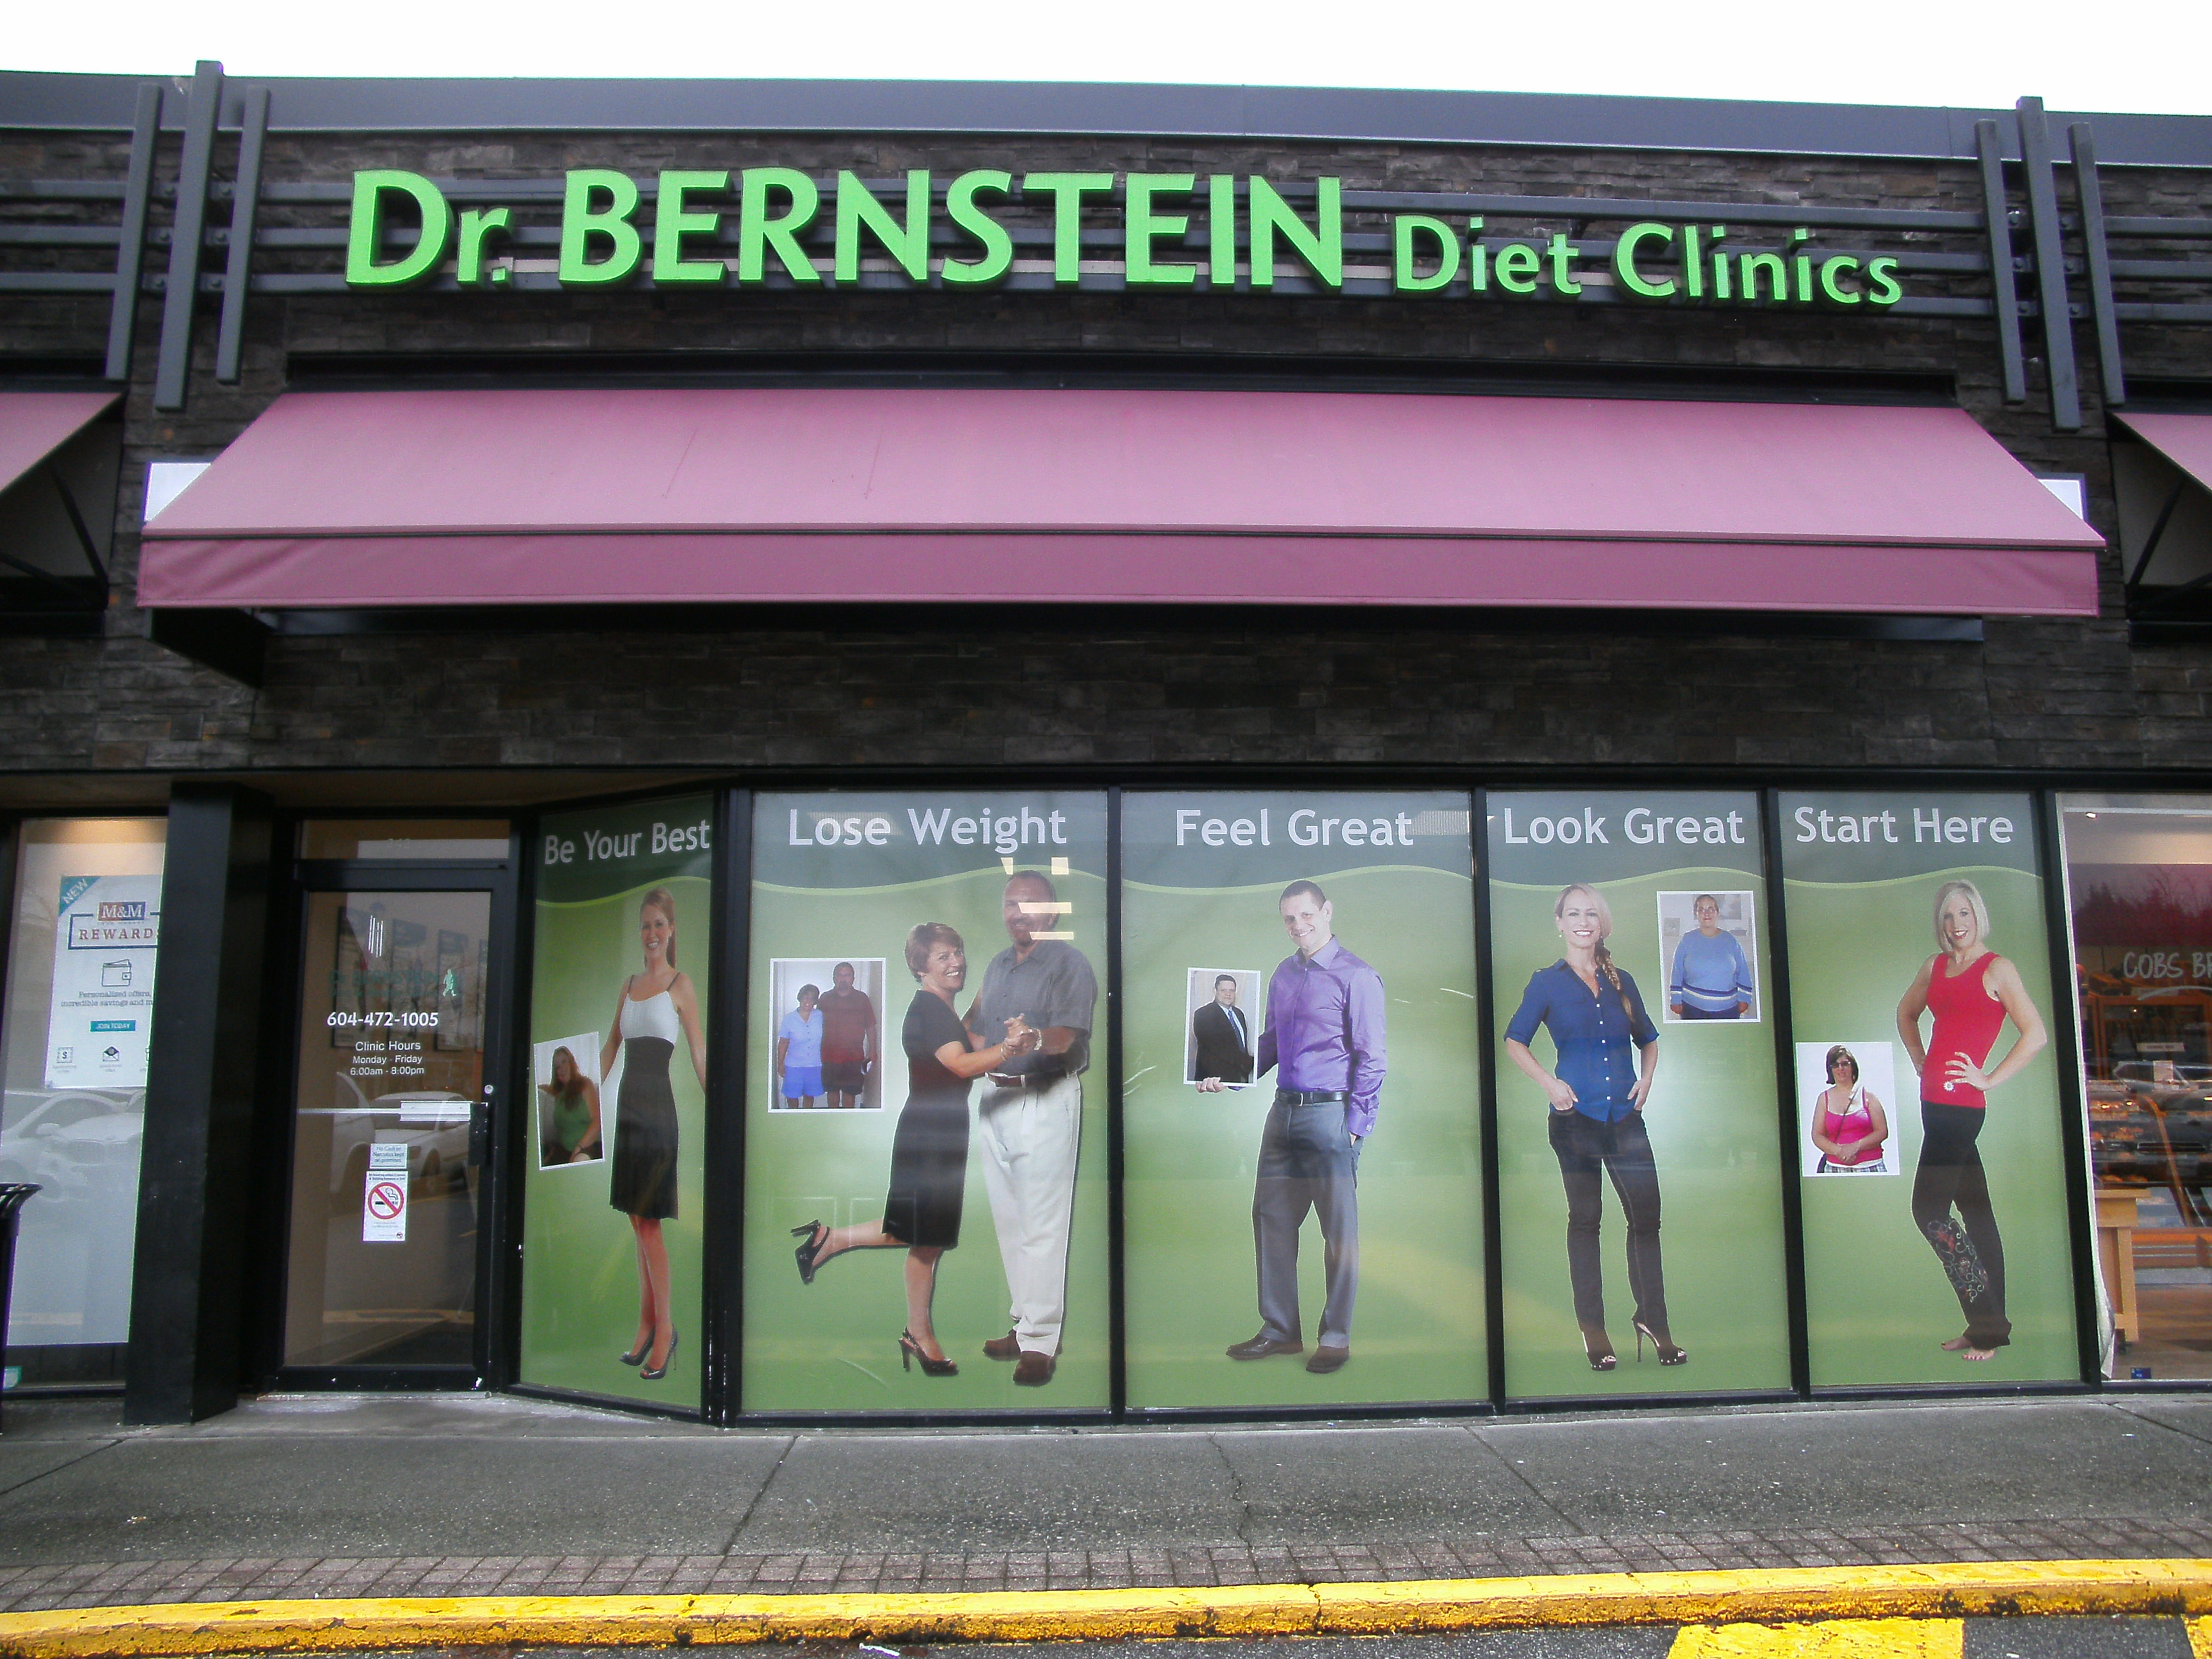 Dr. Bernstein Weight Loss & Diet Clinic, Coquitlam, British Columbia